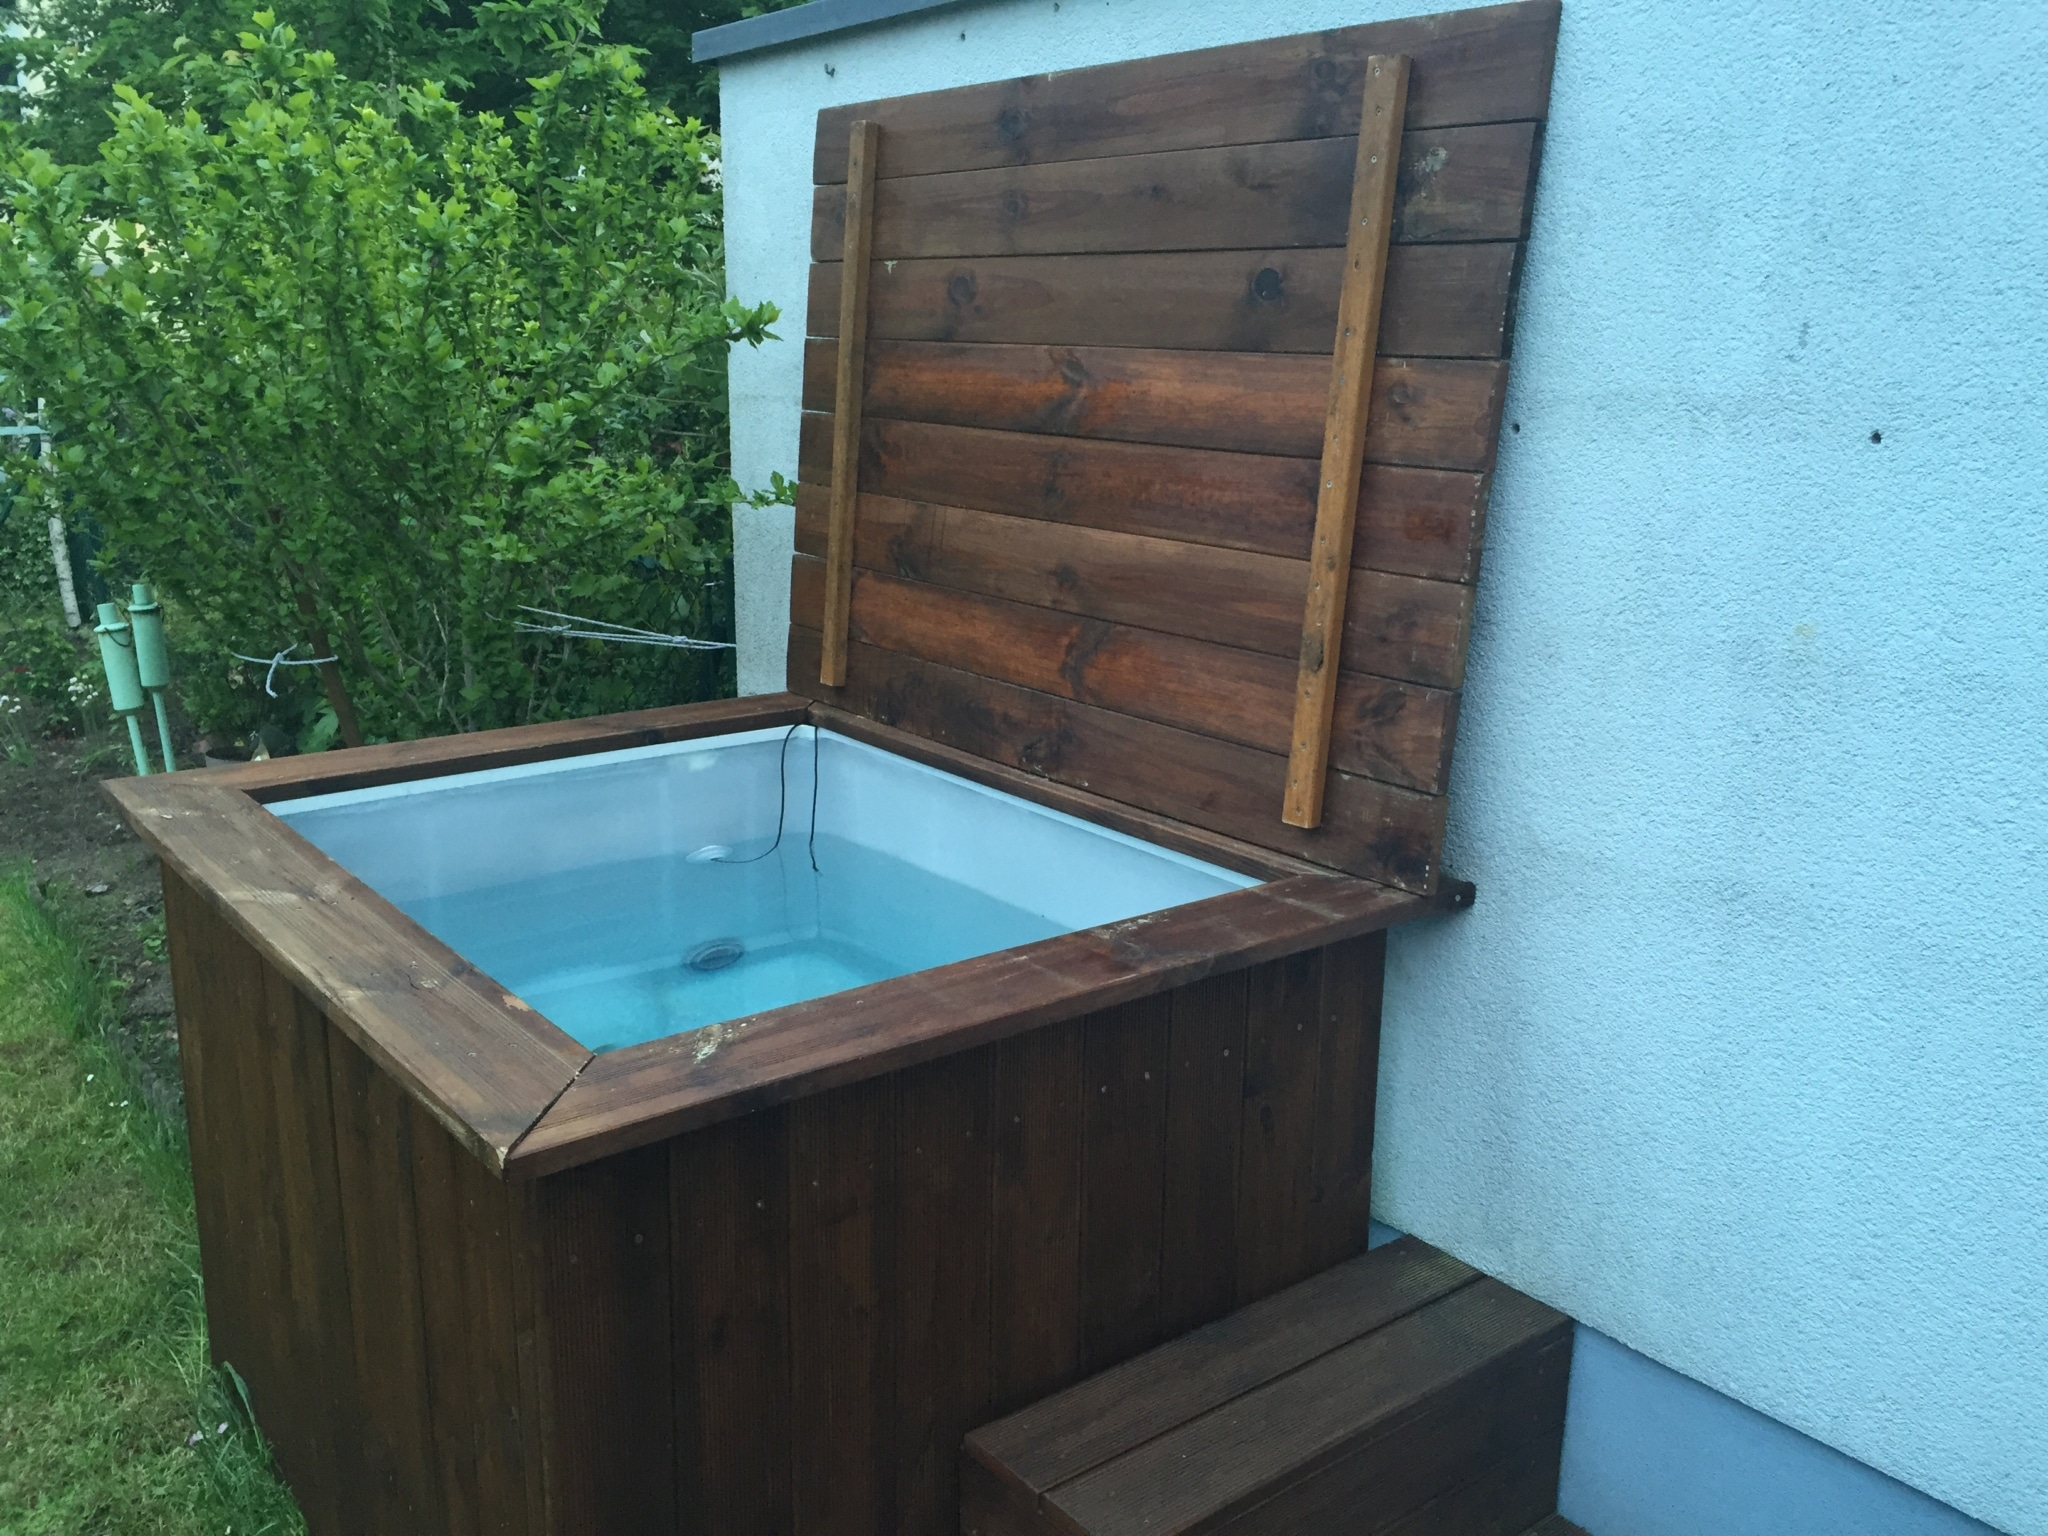 Poolabdeckung Eigenbau Diy Whirlpool Der Deckel Leckemojito You Are On The